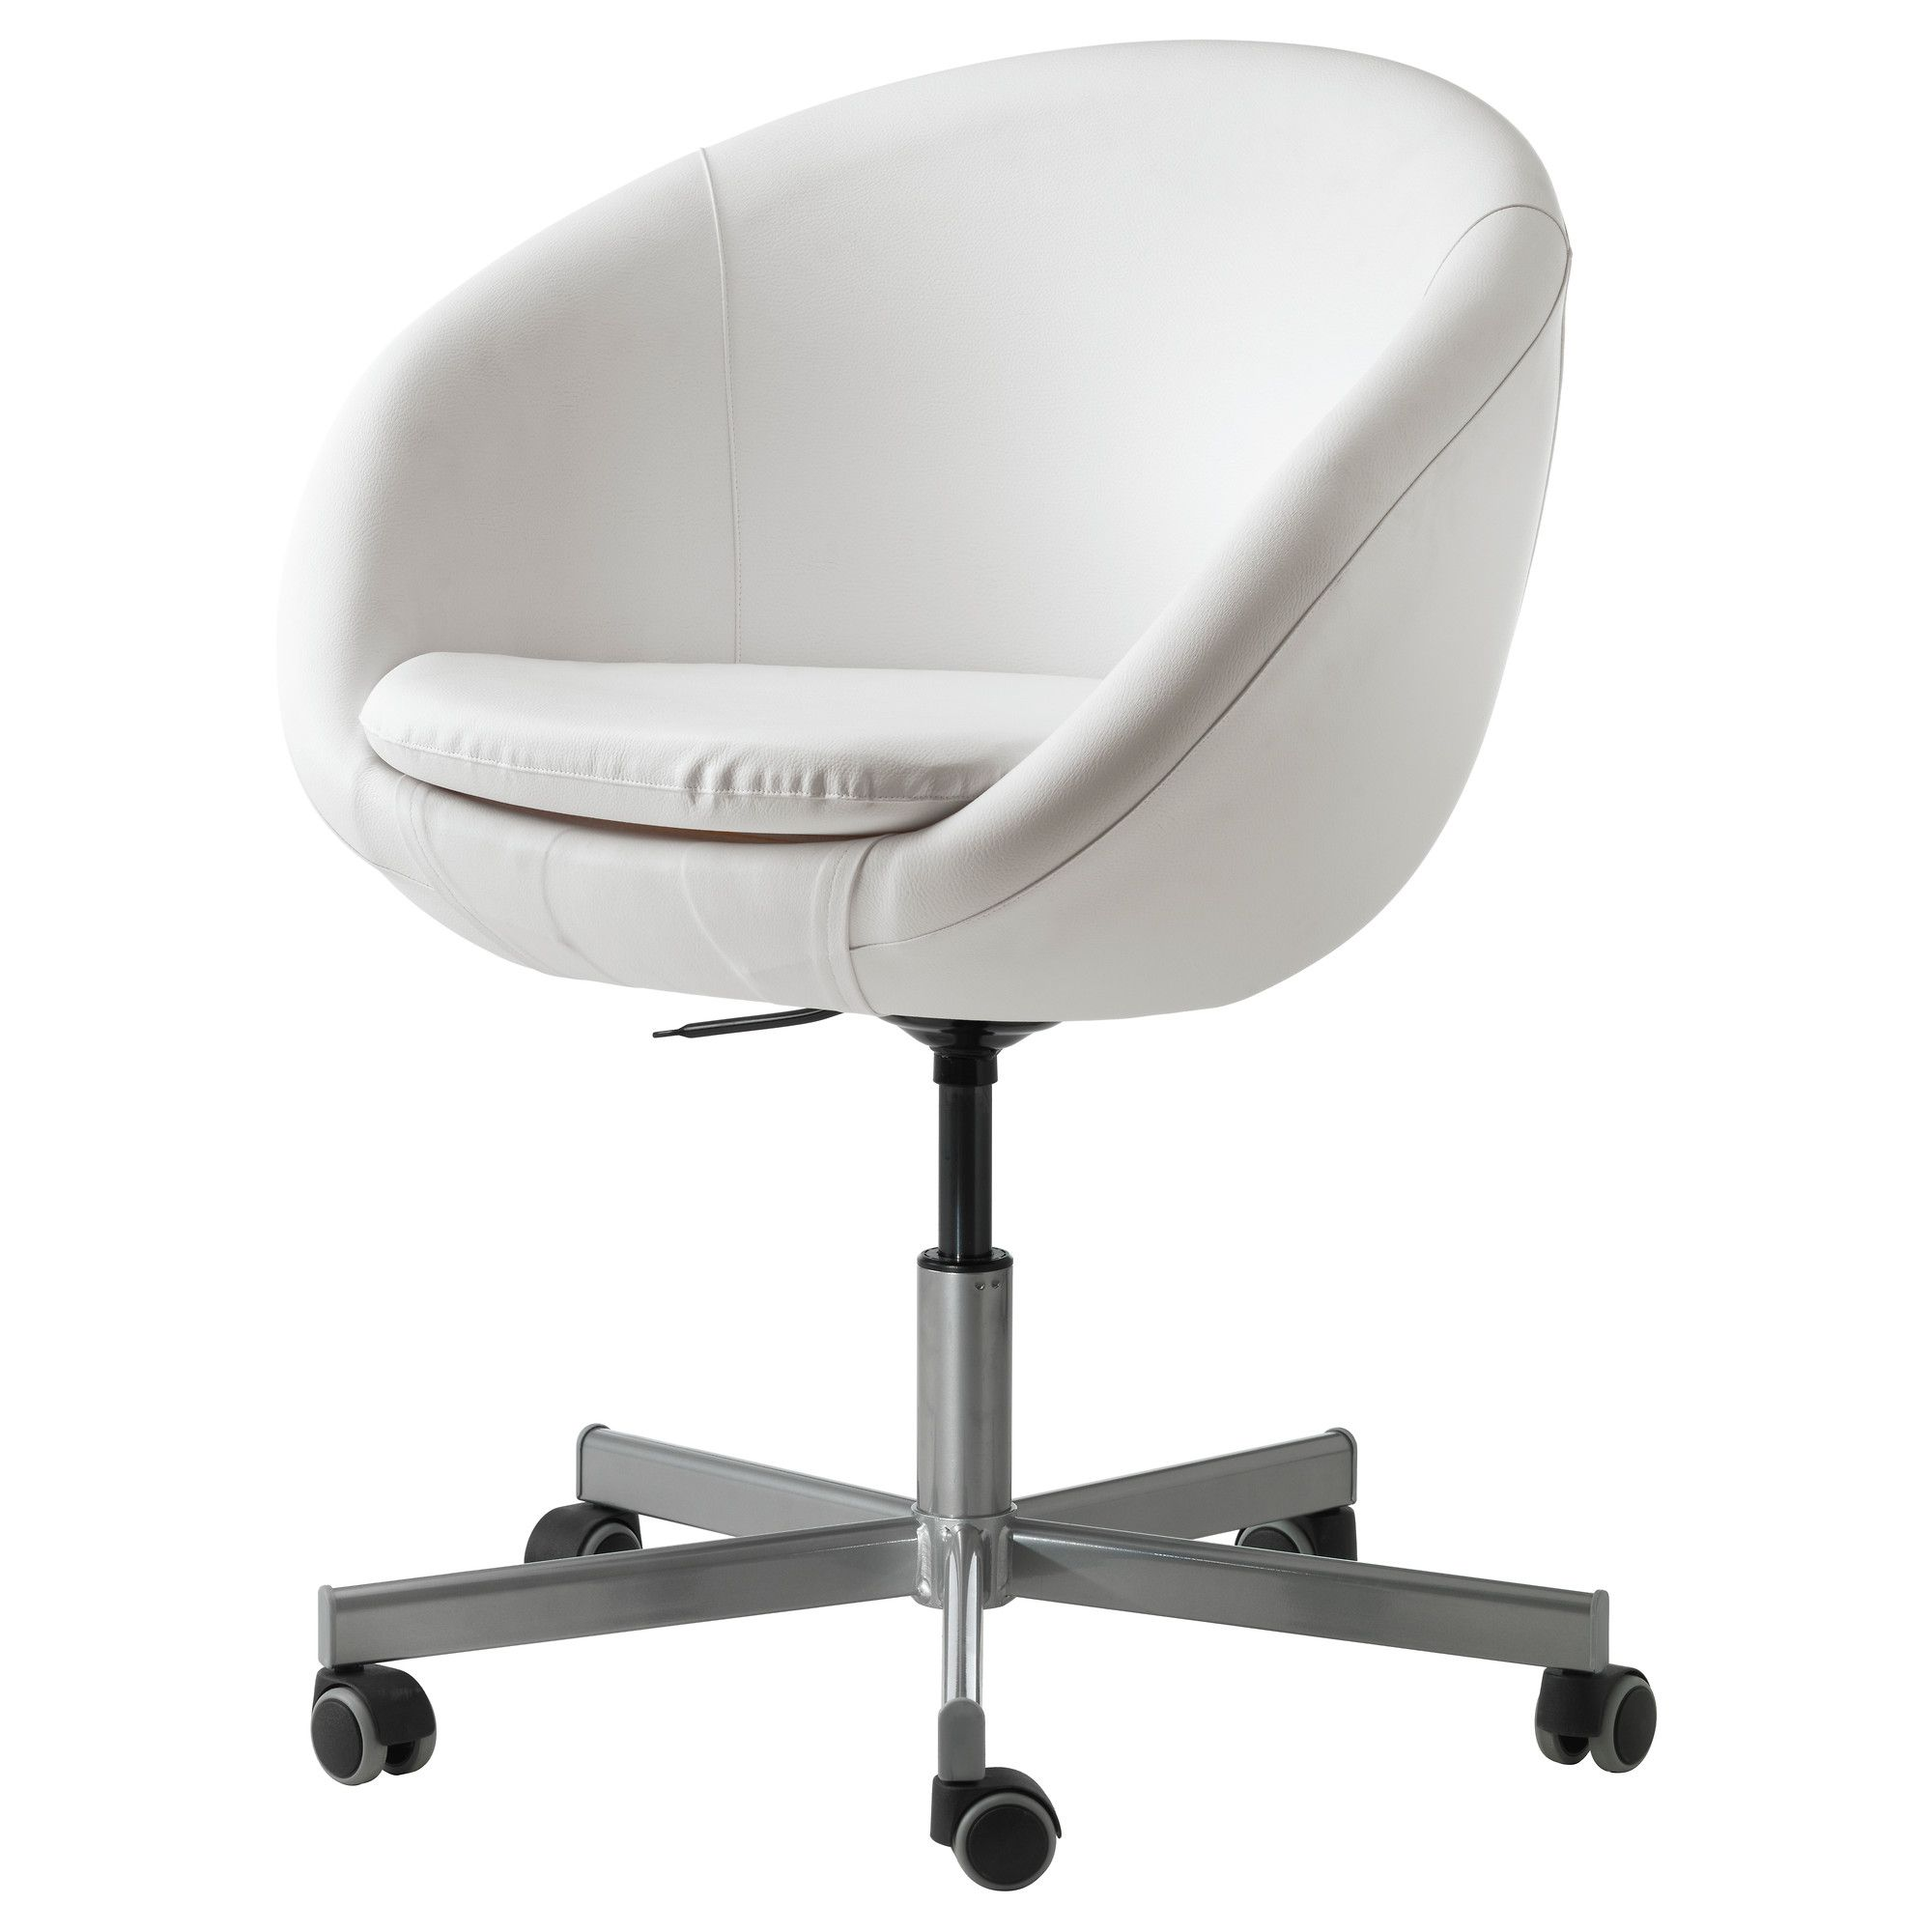 White Desk And Chair Skruvsta Swivel Chair Idhult White Swivel Chair Room